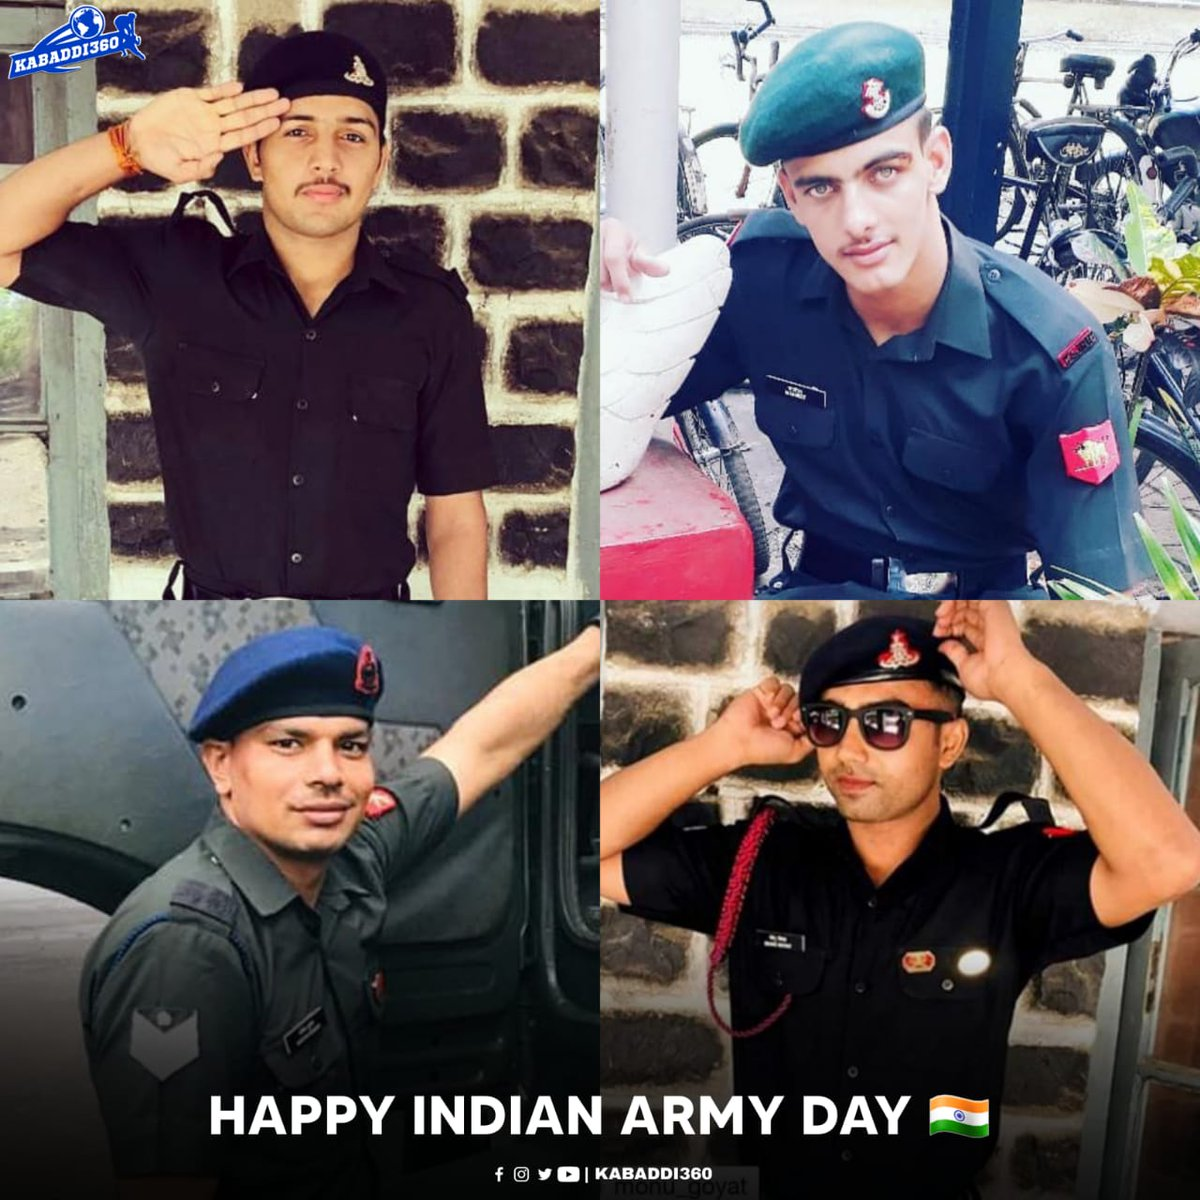 A moment of appreciation for our Kabaddi players 👏🏻 who serve the Indian Army!   #IndianArmyDay #Kabaddi360 #Kabaddi